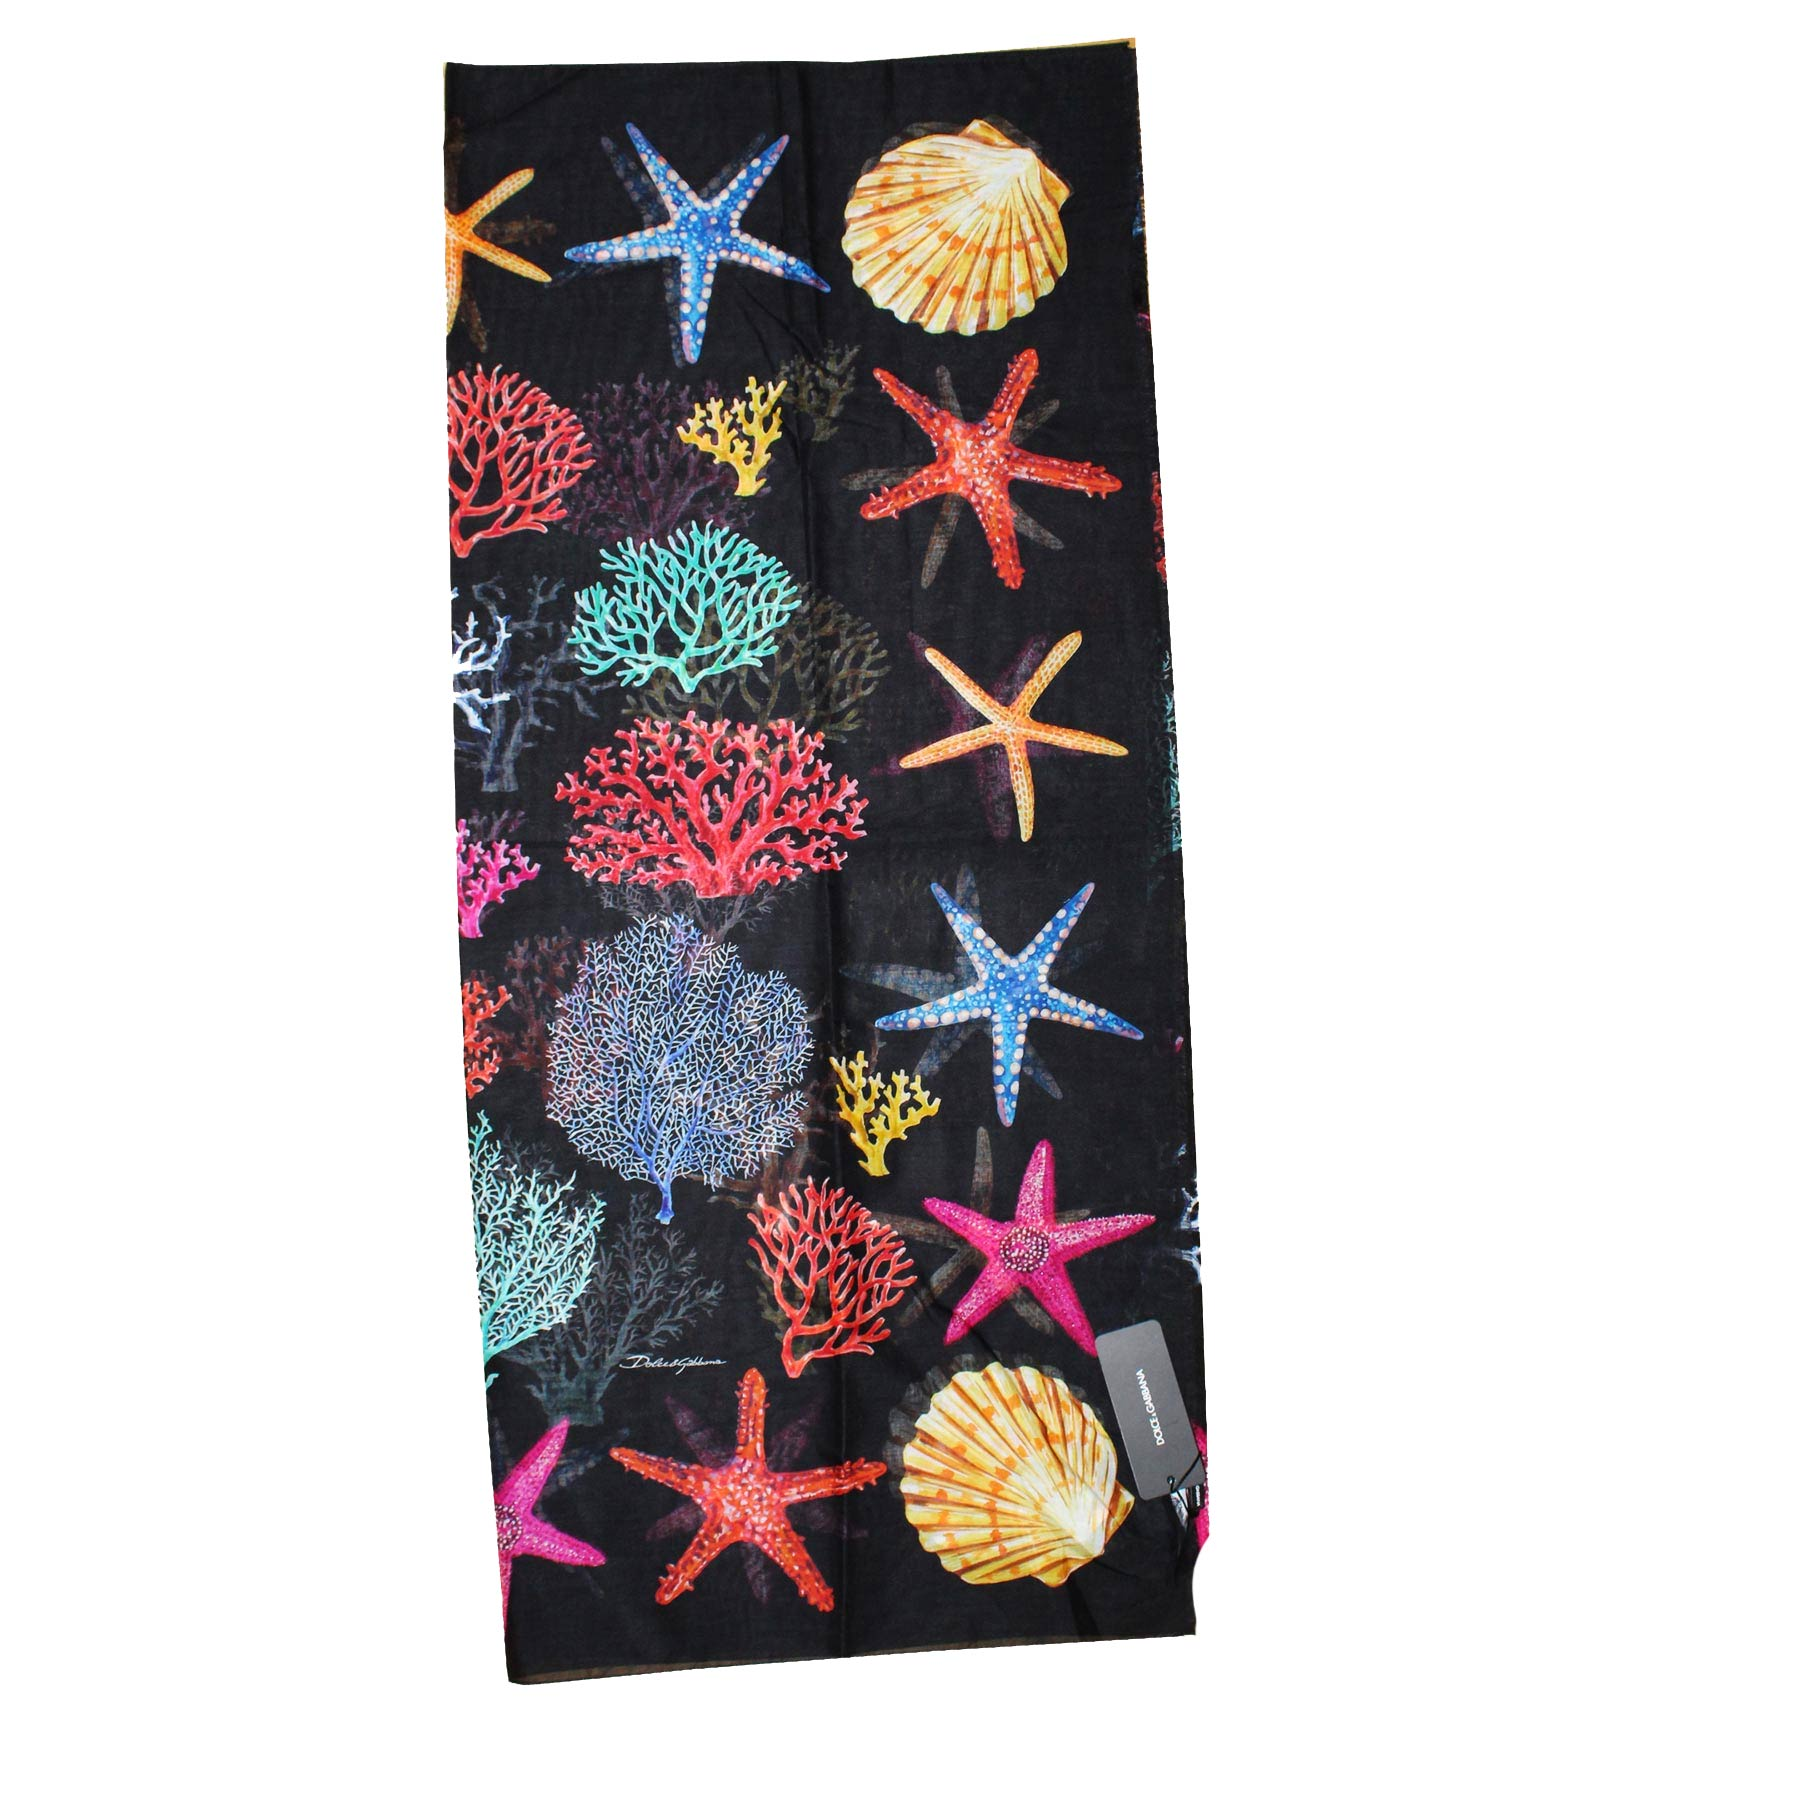 Dolce & Gabbana Scarf Black Shell Coral & Sea Star